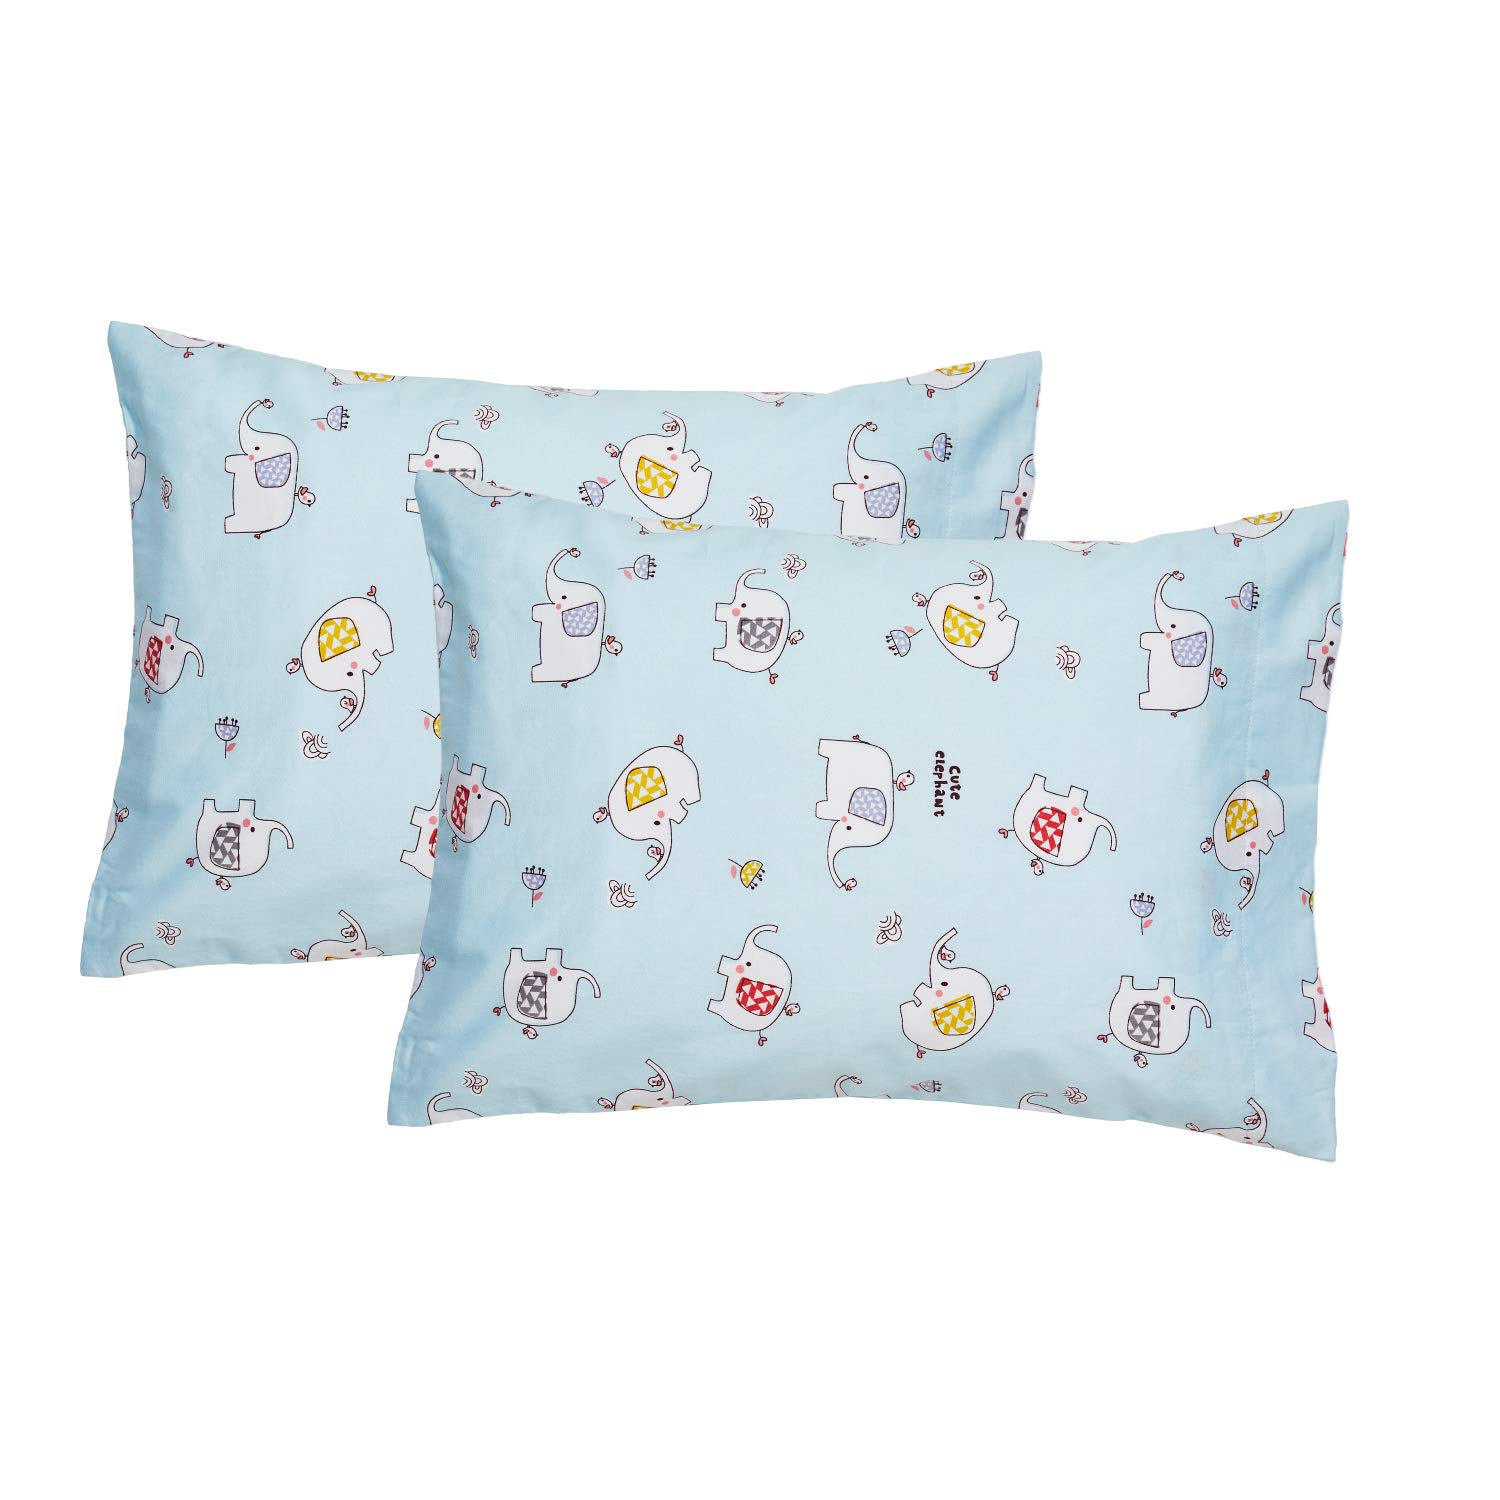 EXQ Home Toddler Pillowcases 14x20 Cotton Travle Pillow Case Set of 2, Small Pillow Case Fits Baby Pillows Sized 12x16, 13x18, Machine Washable Baby Pillow Case with Envelope Closure(Blue Elephant)